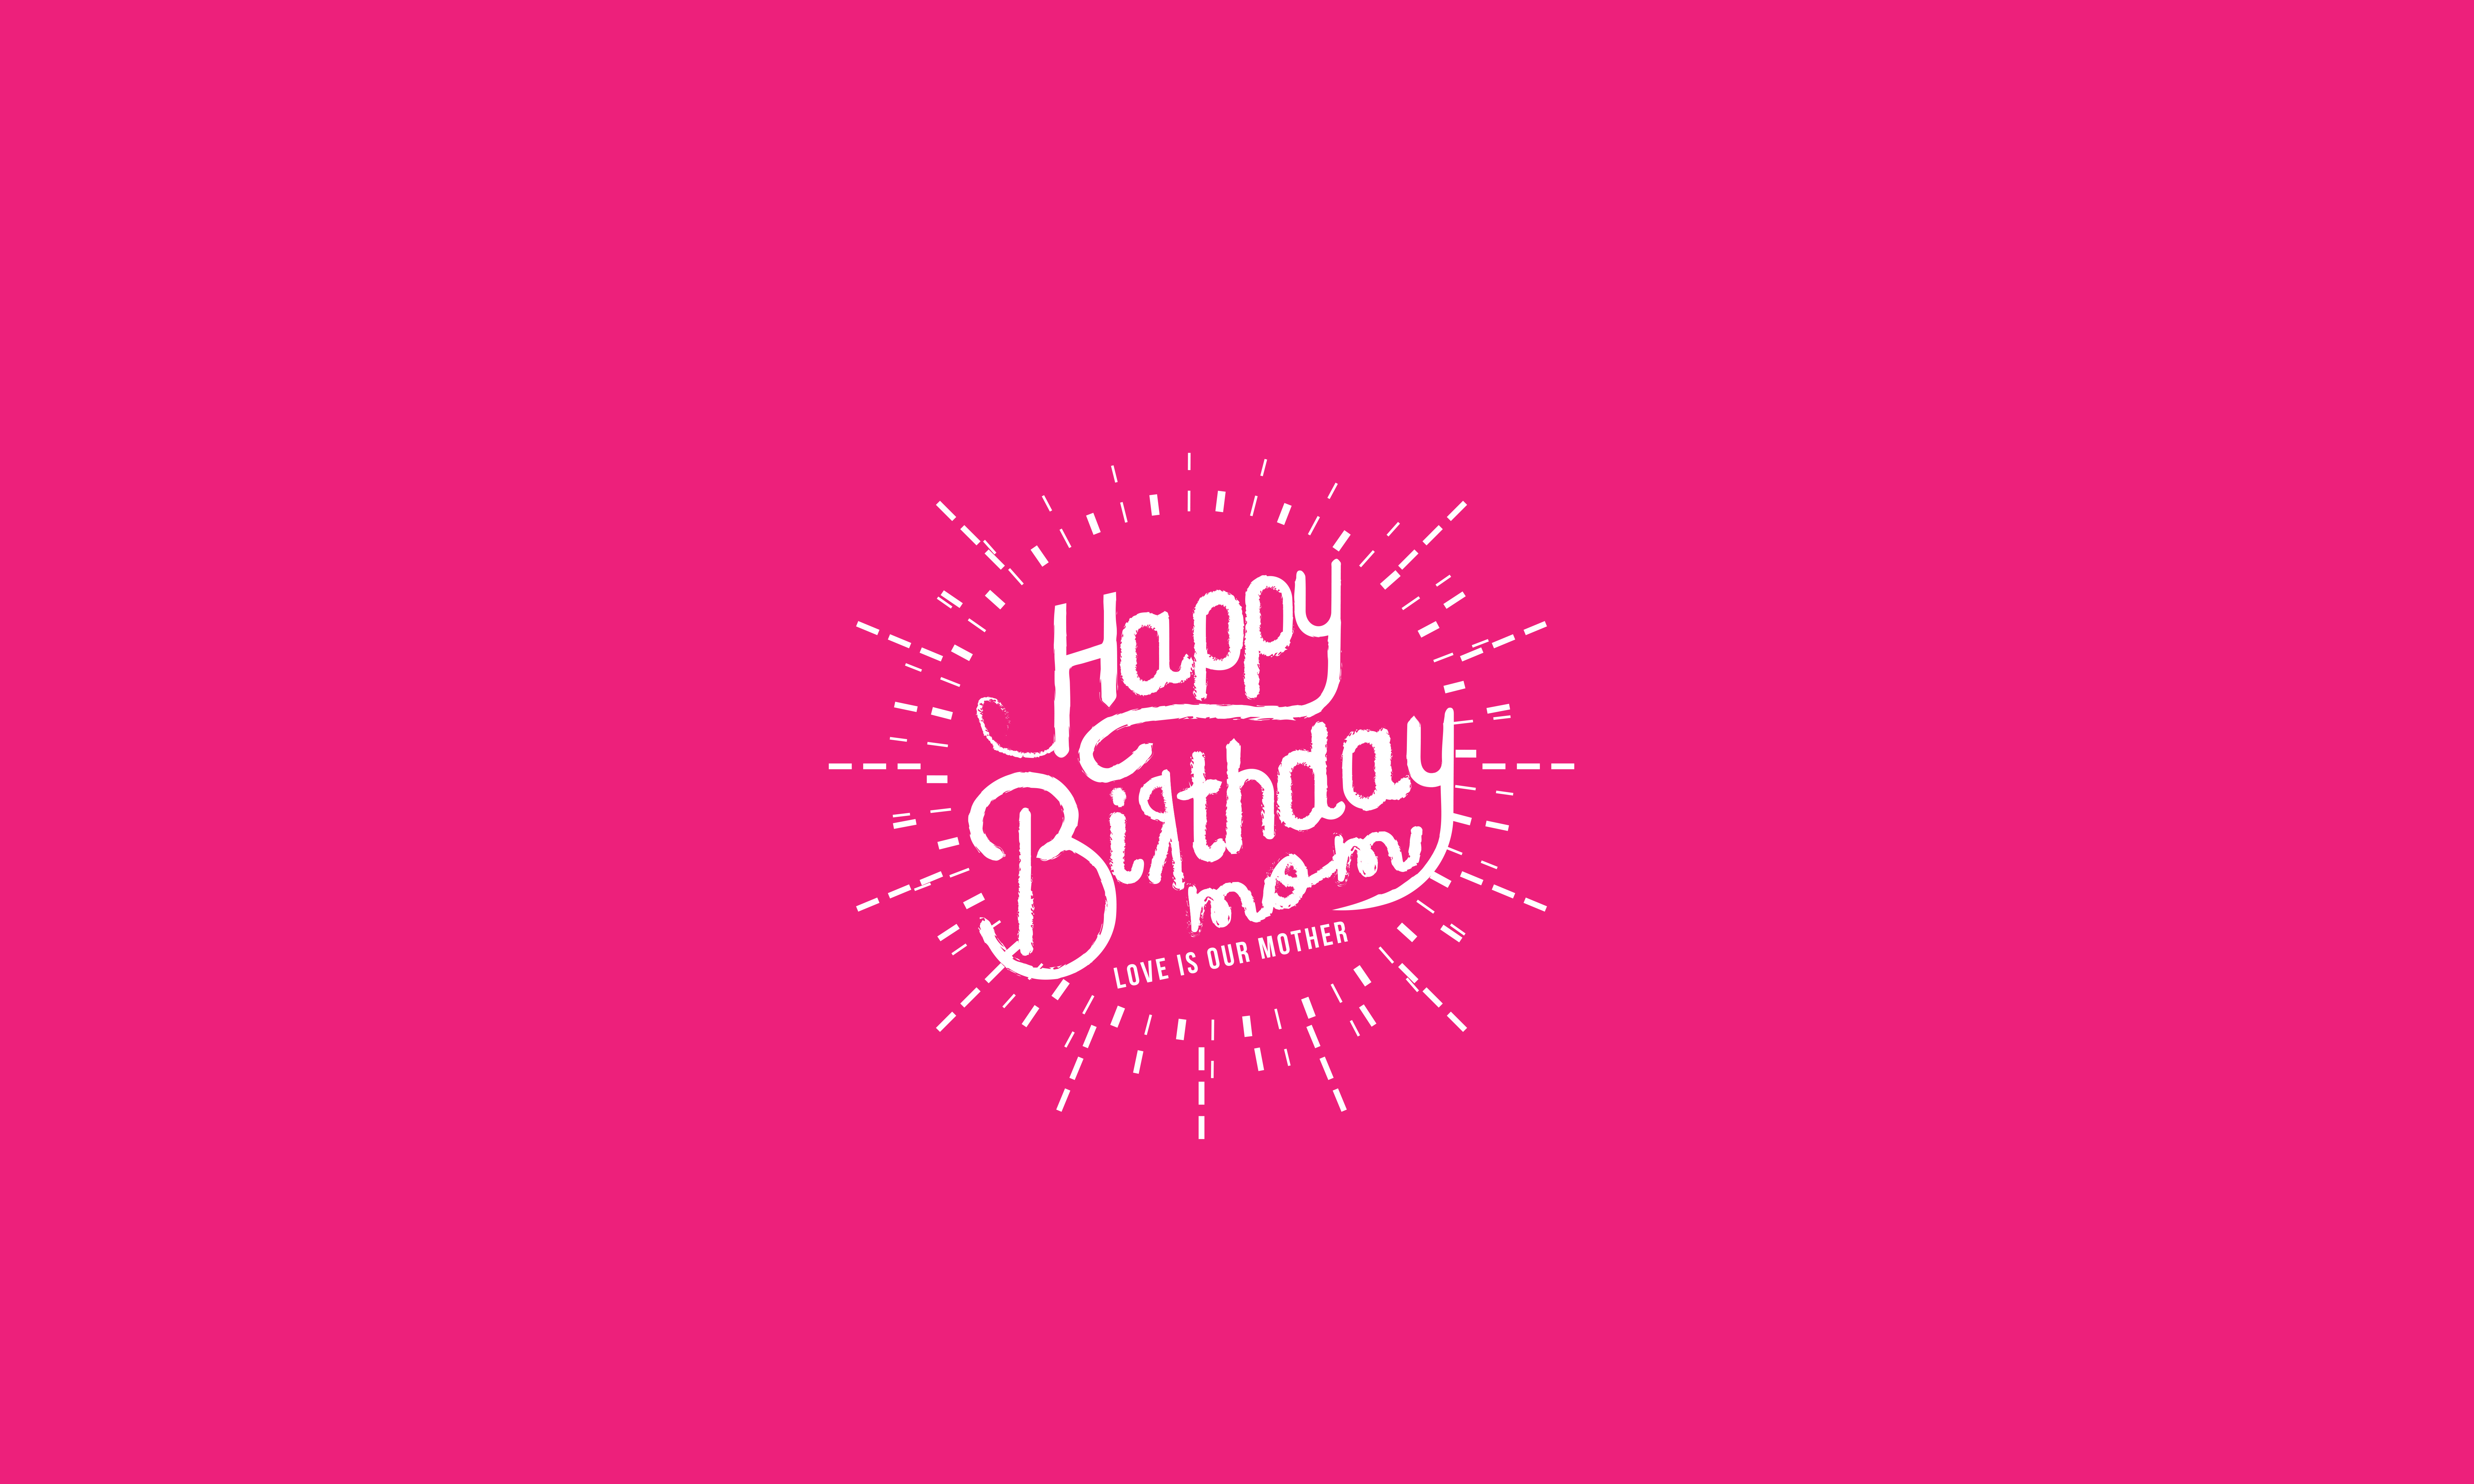 Download Free Happy Birthday Mom Love Is Our Mother Graphic By Baraeiji for Cricut Explore, Silhouette and other cutting machines.